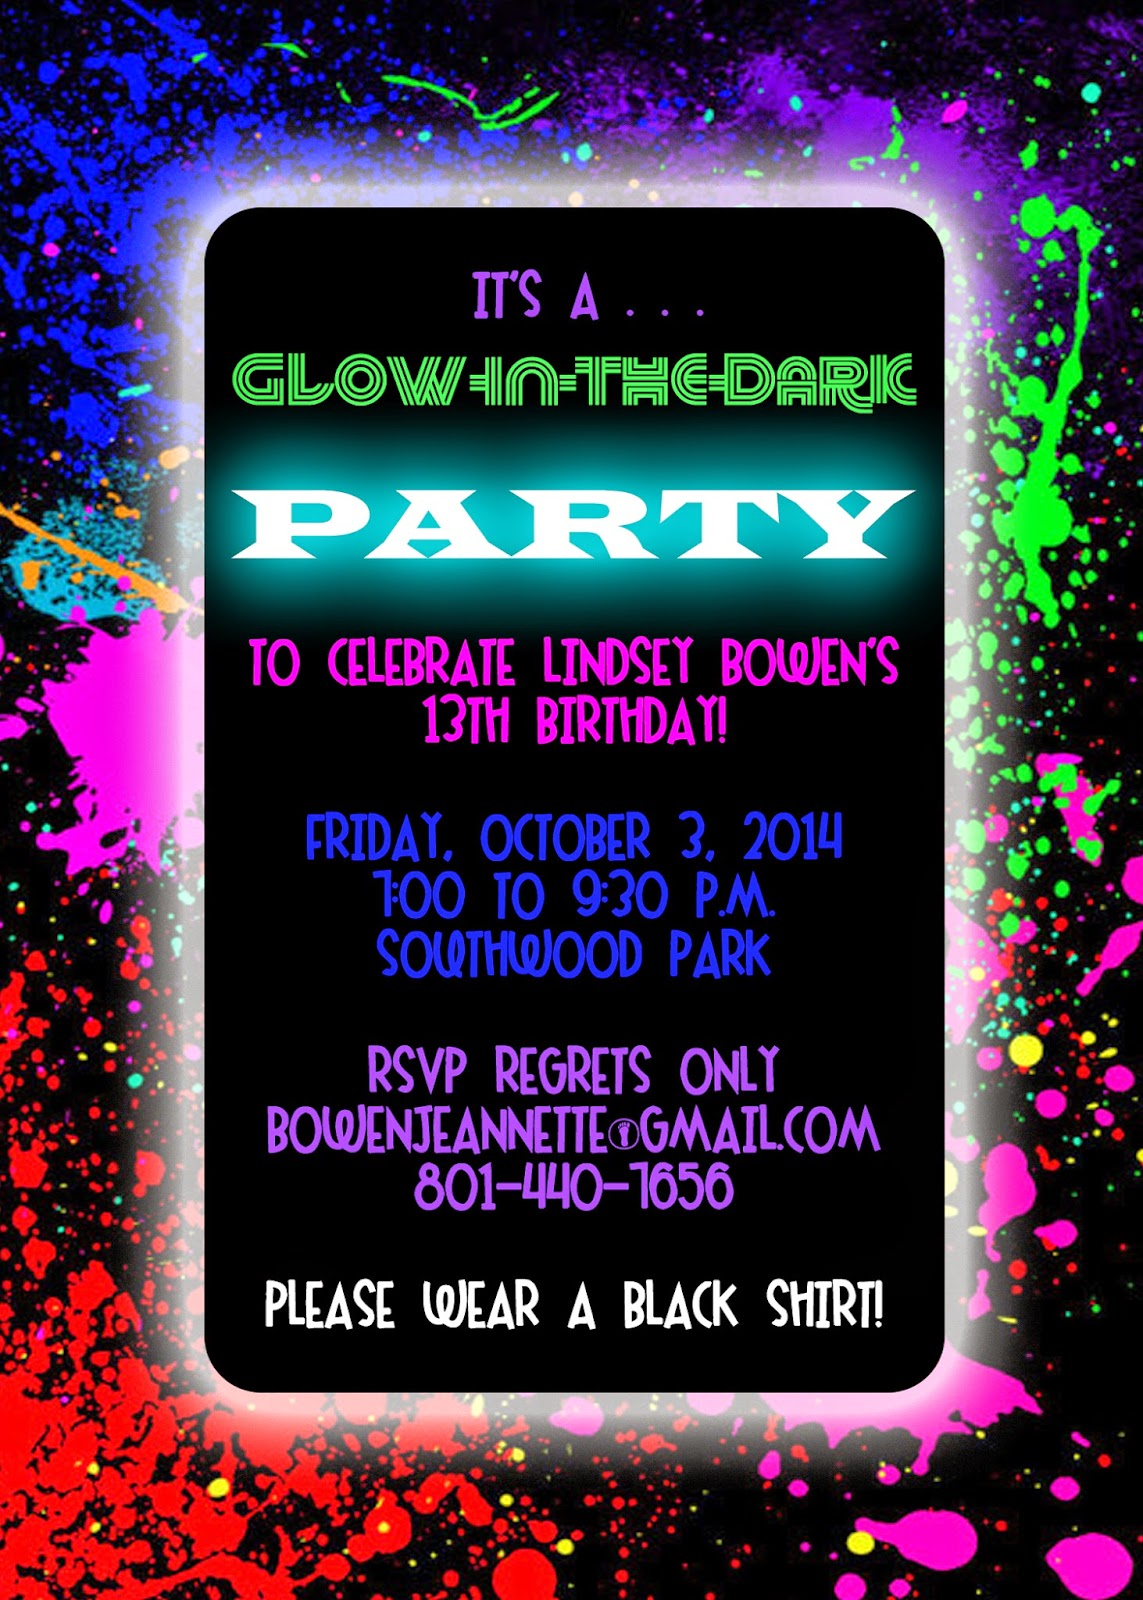 The Bowen Family Lindseys 13th Birthday GlowintheDark party – Glow in the Dark Party Invitation Ideas